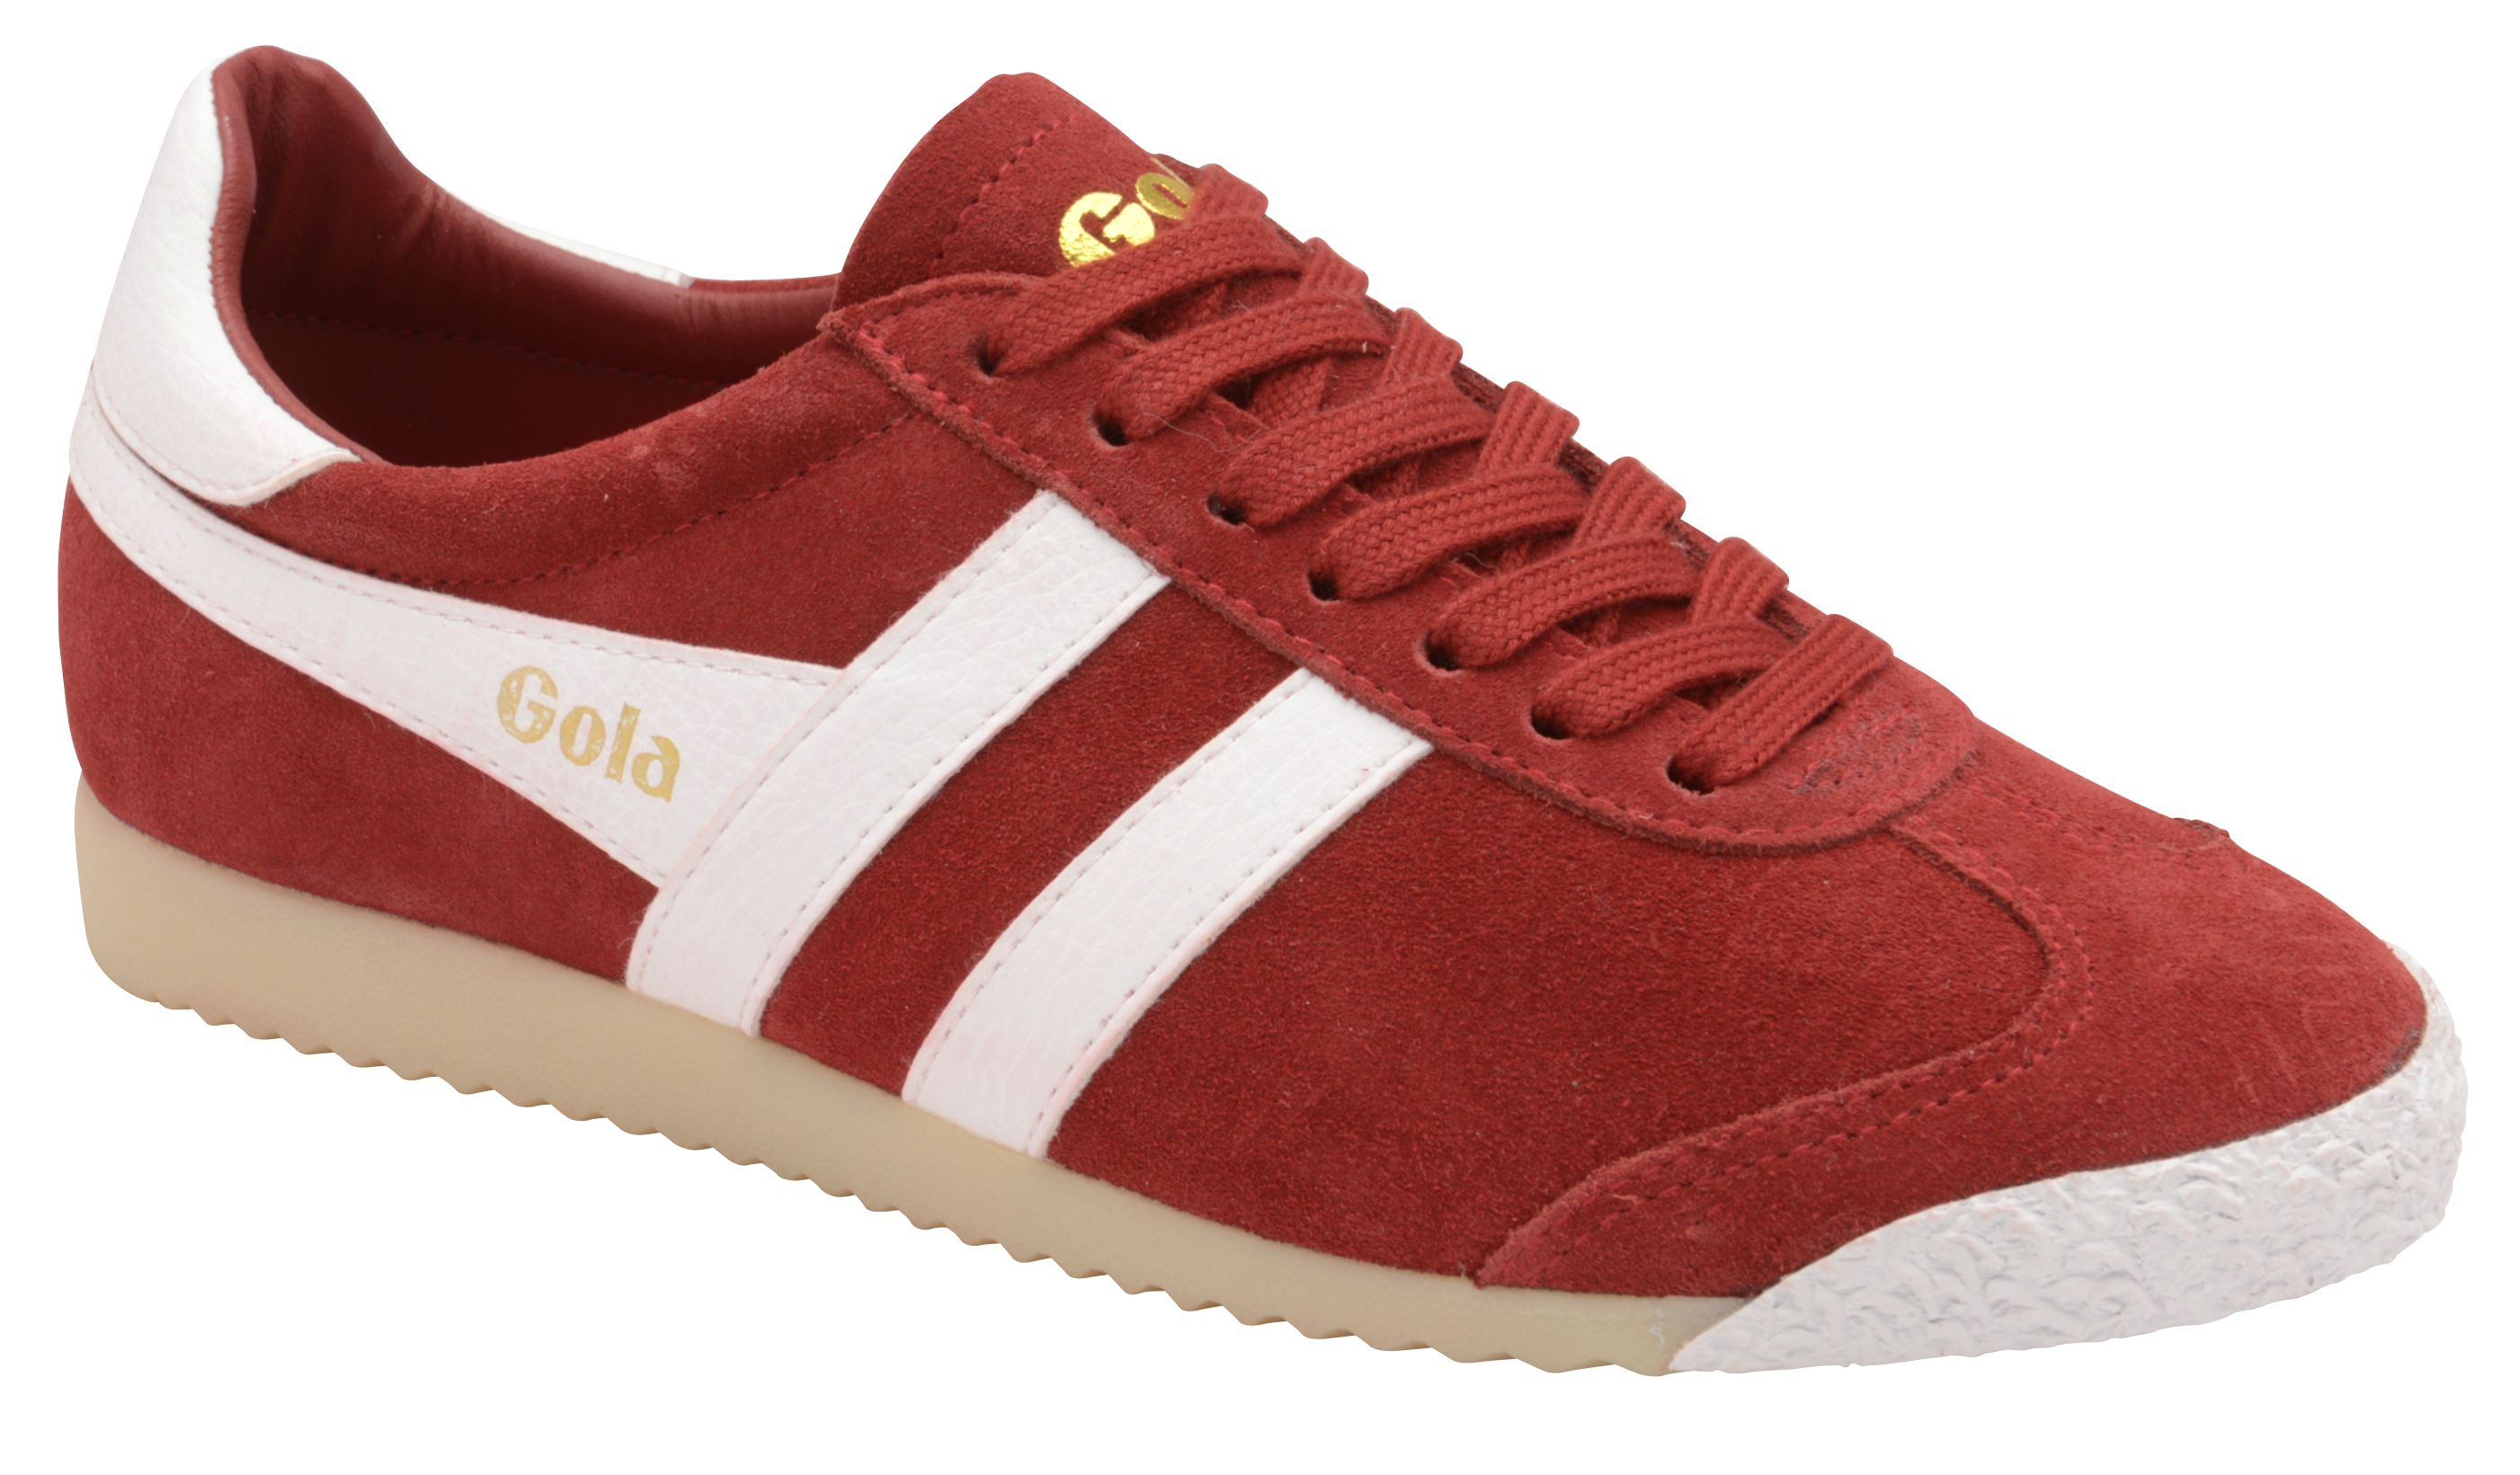 Gola Harrier 50 Suede Lace Up Trainers, Red